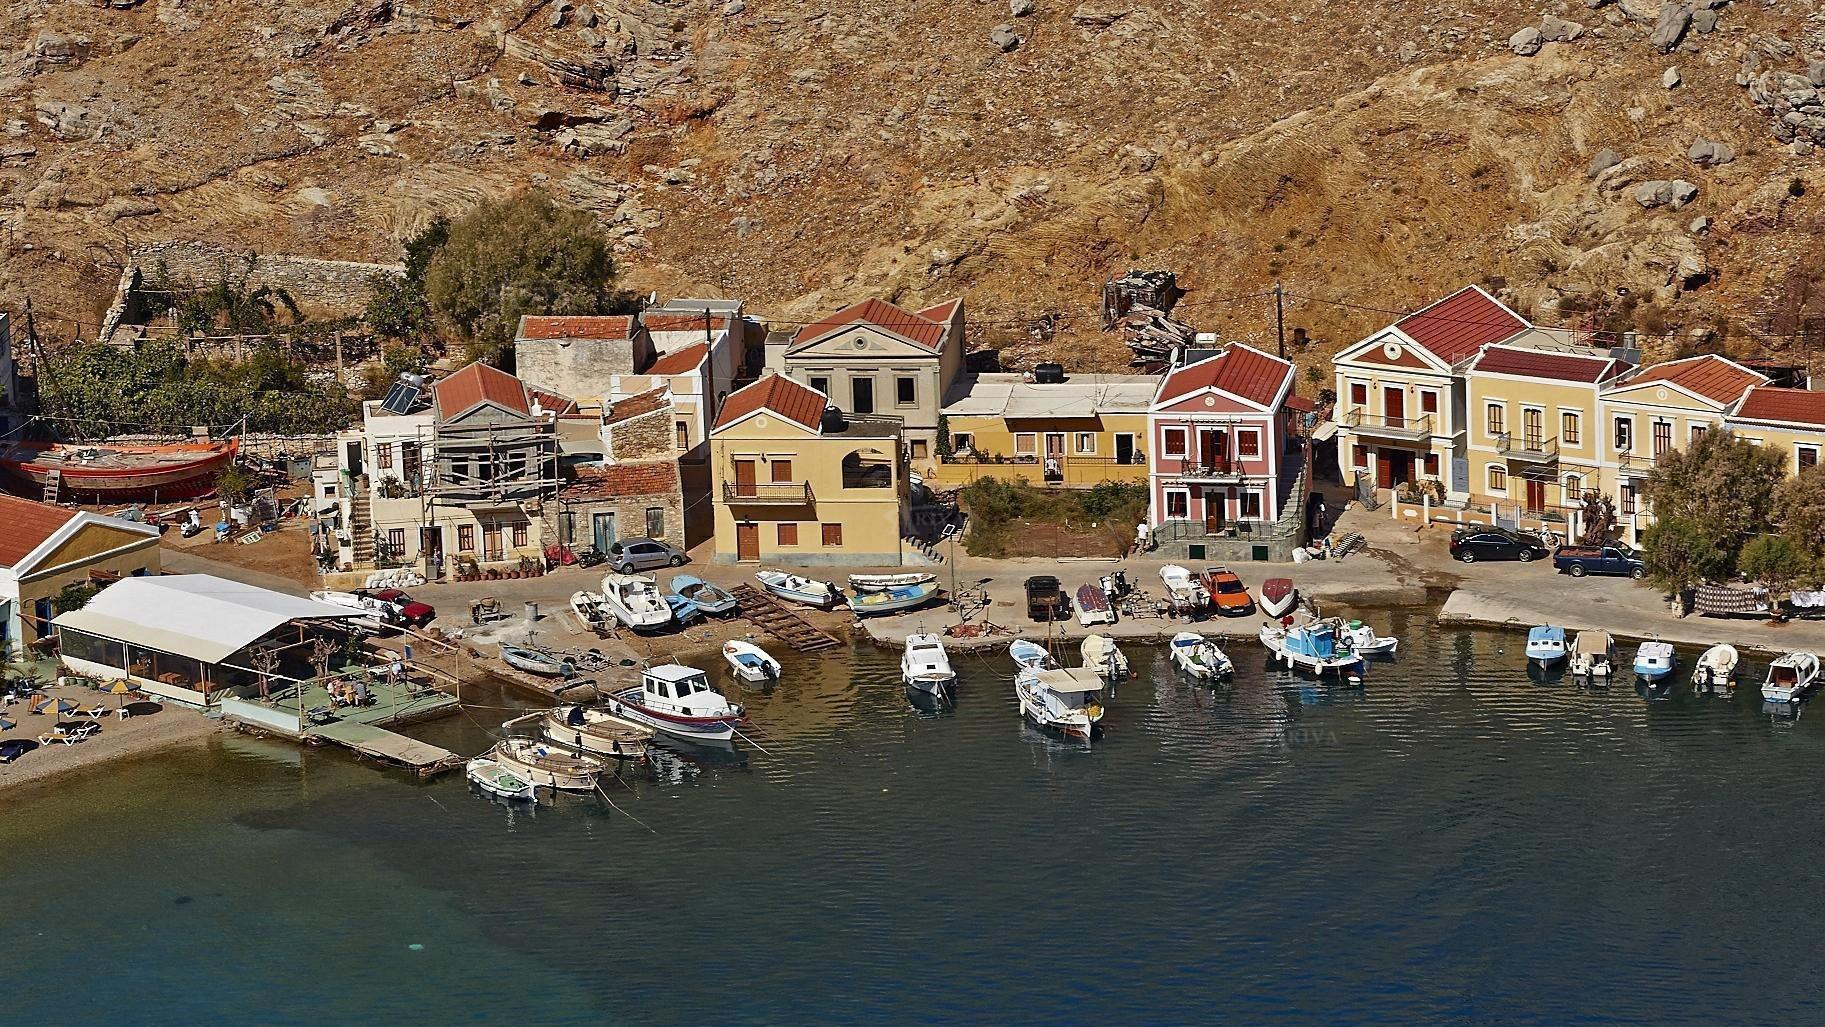 Symi Fishermans